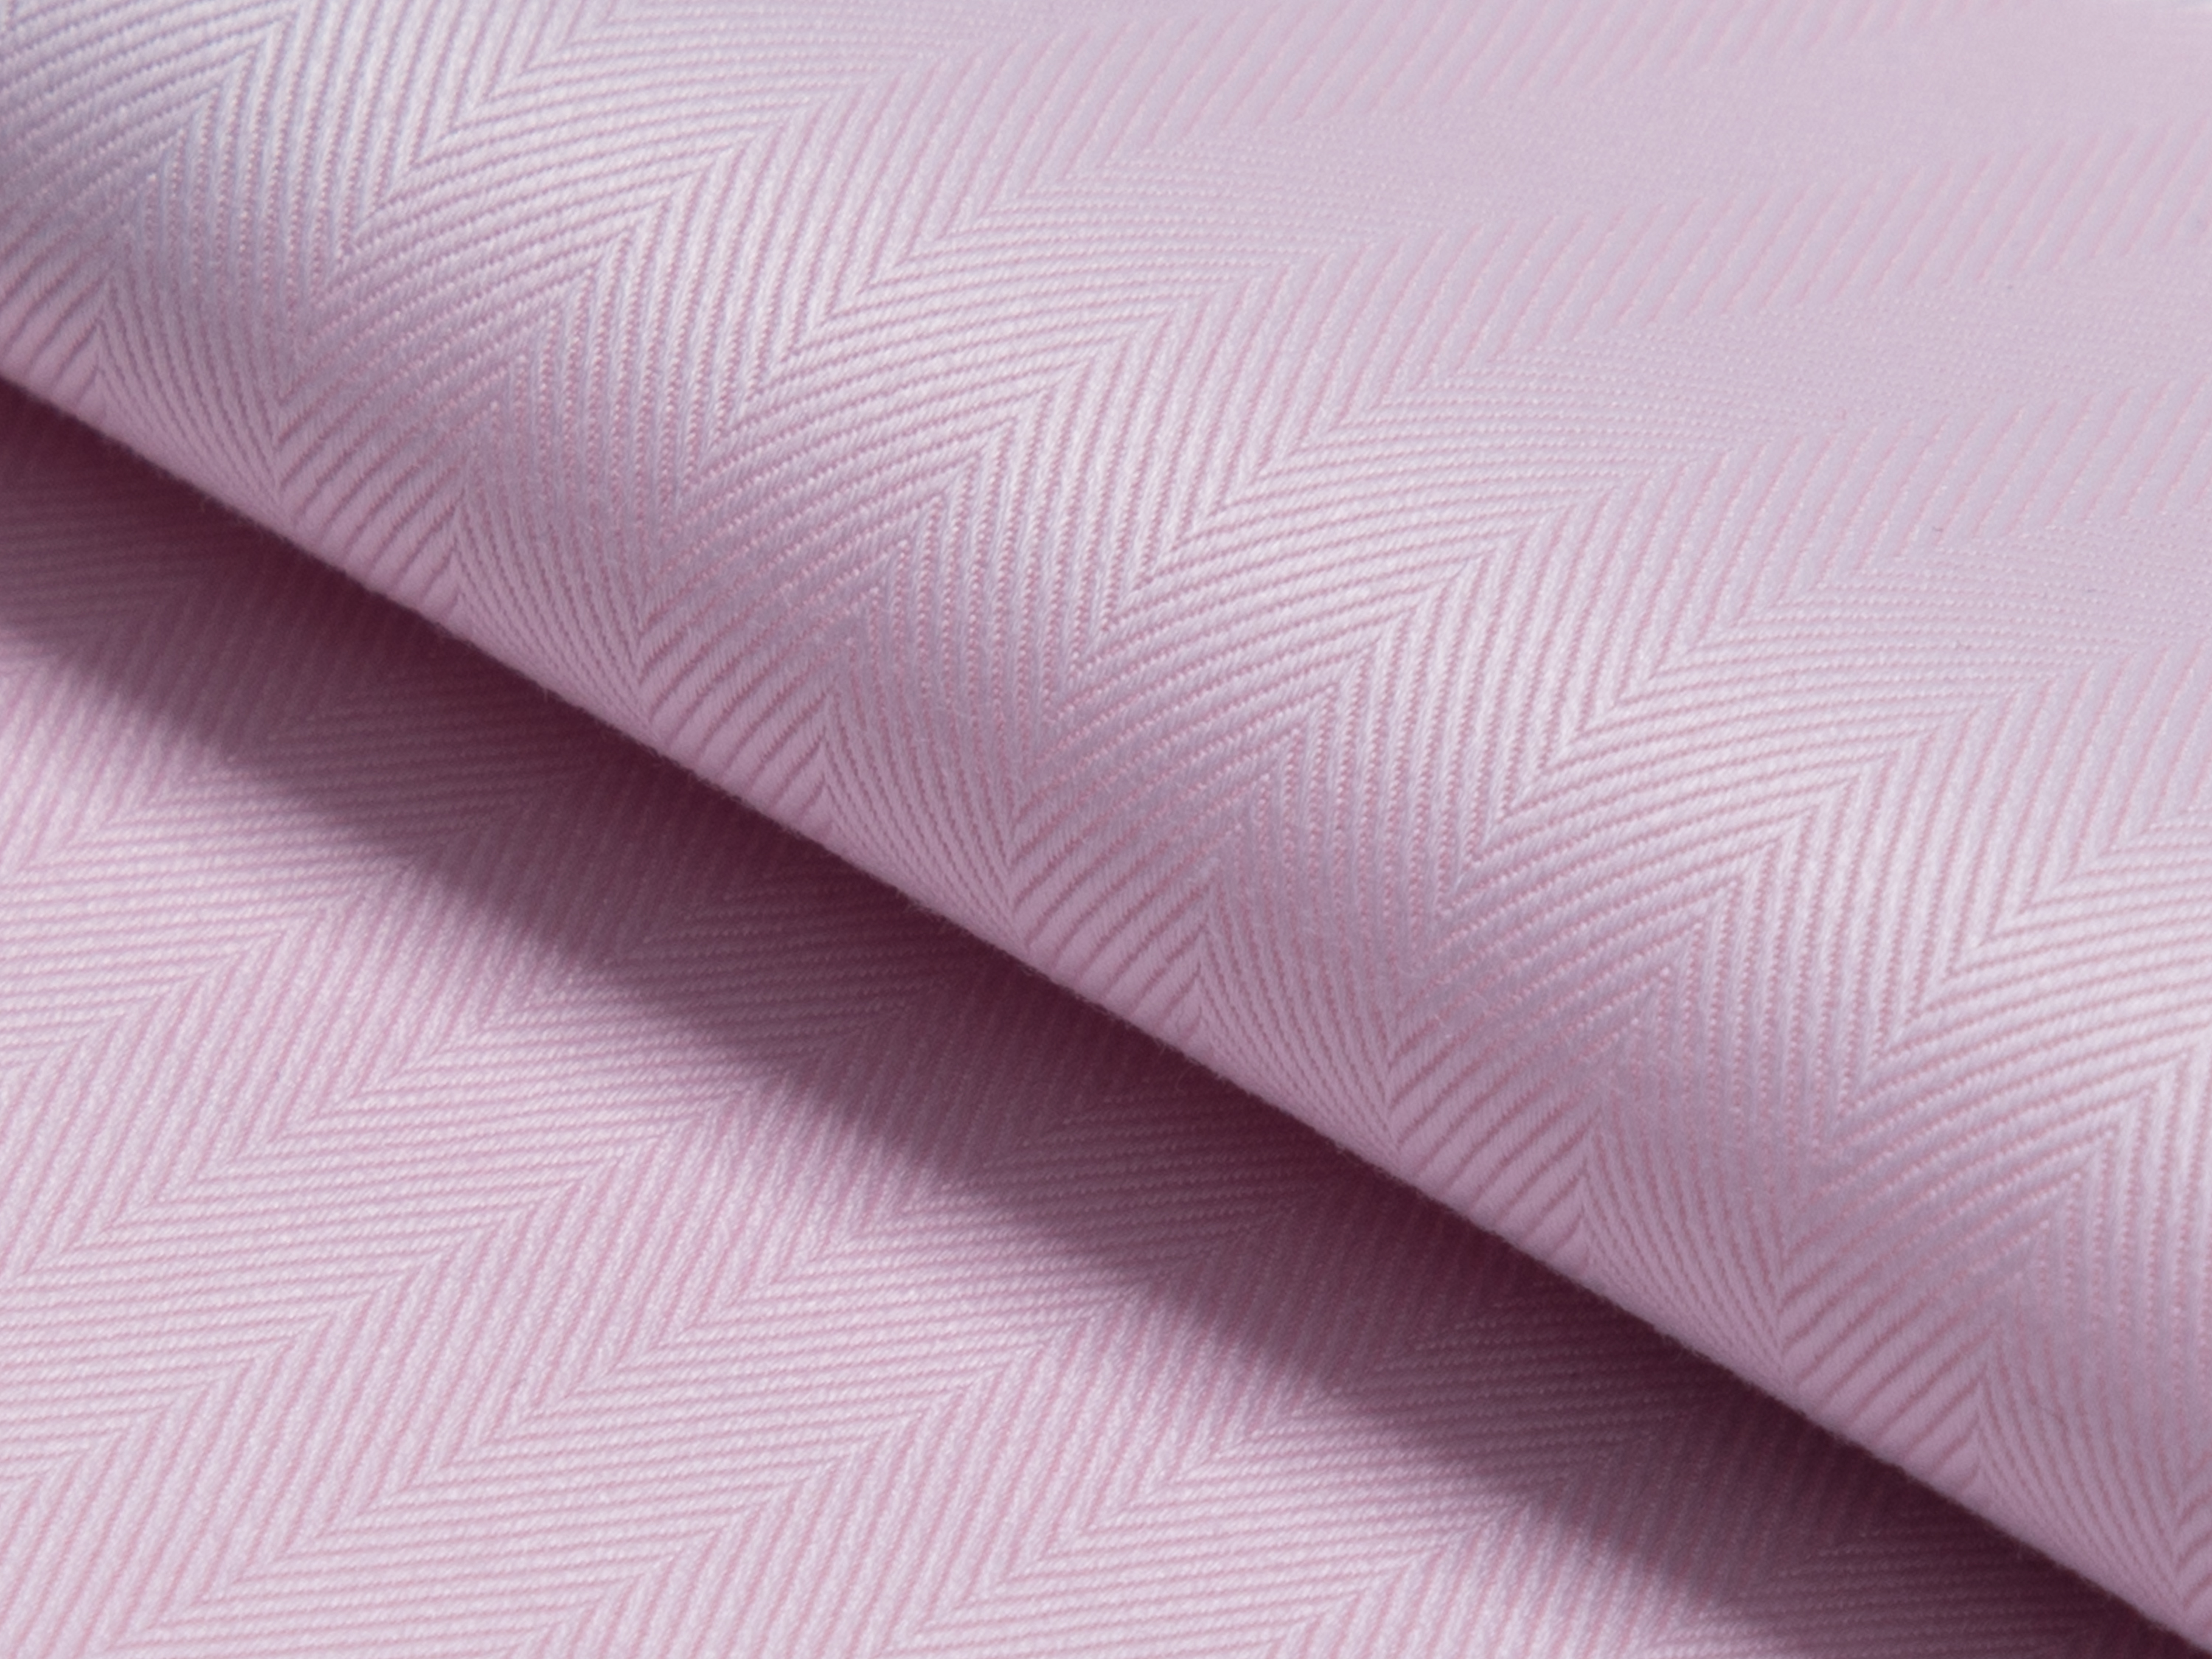 Buy tailor made shirts online - MAYFAIR (NEW) - Herringbone Pink